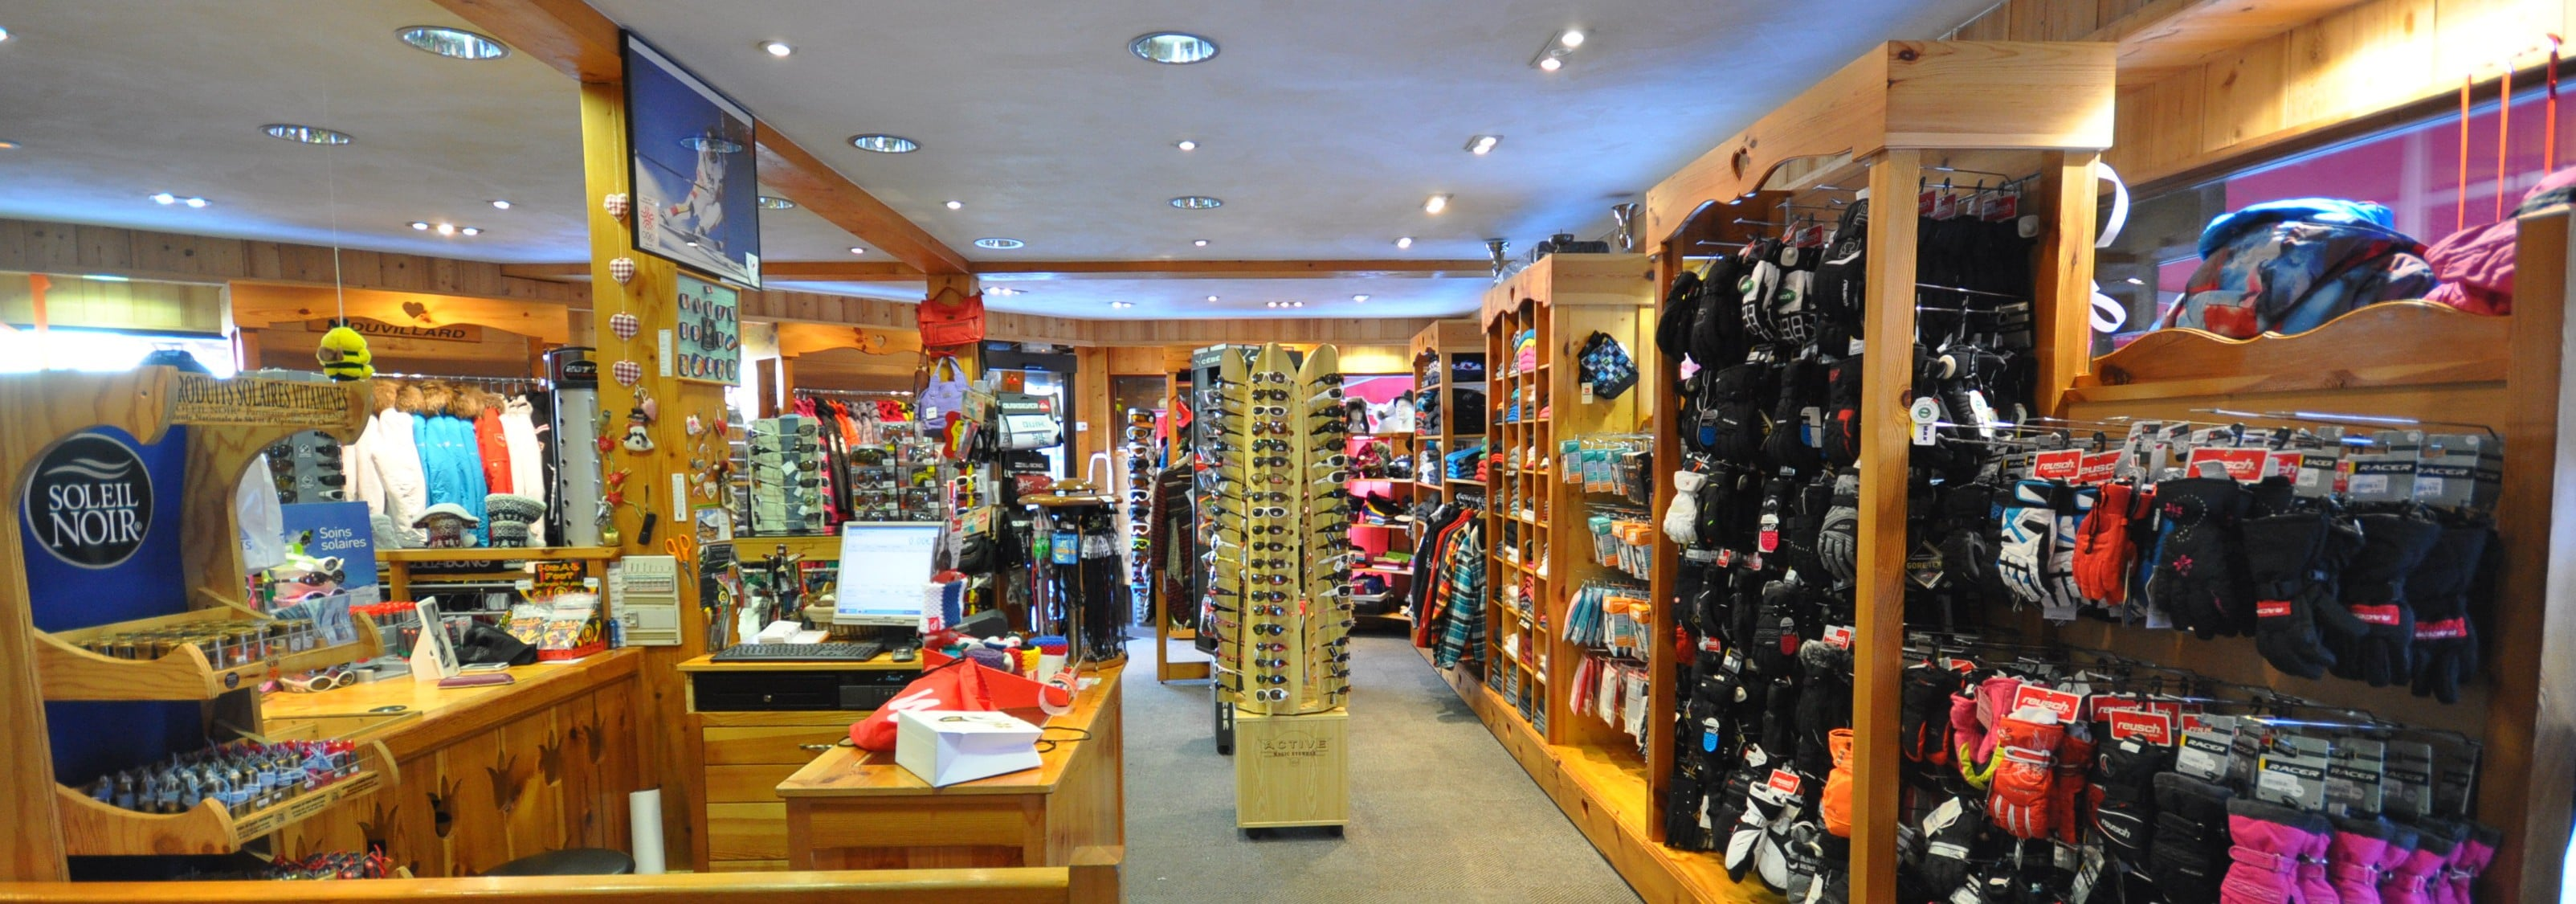 Sports is not only a rental ski shop but also a clothes store